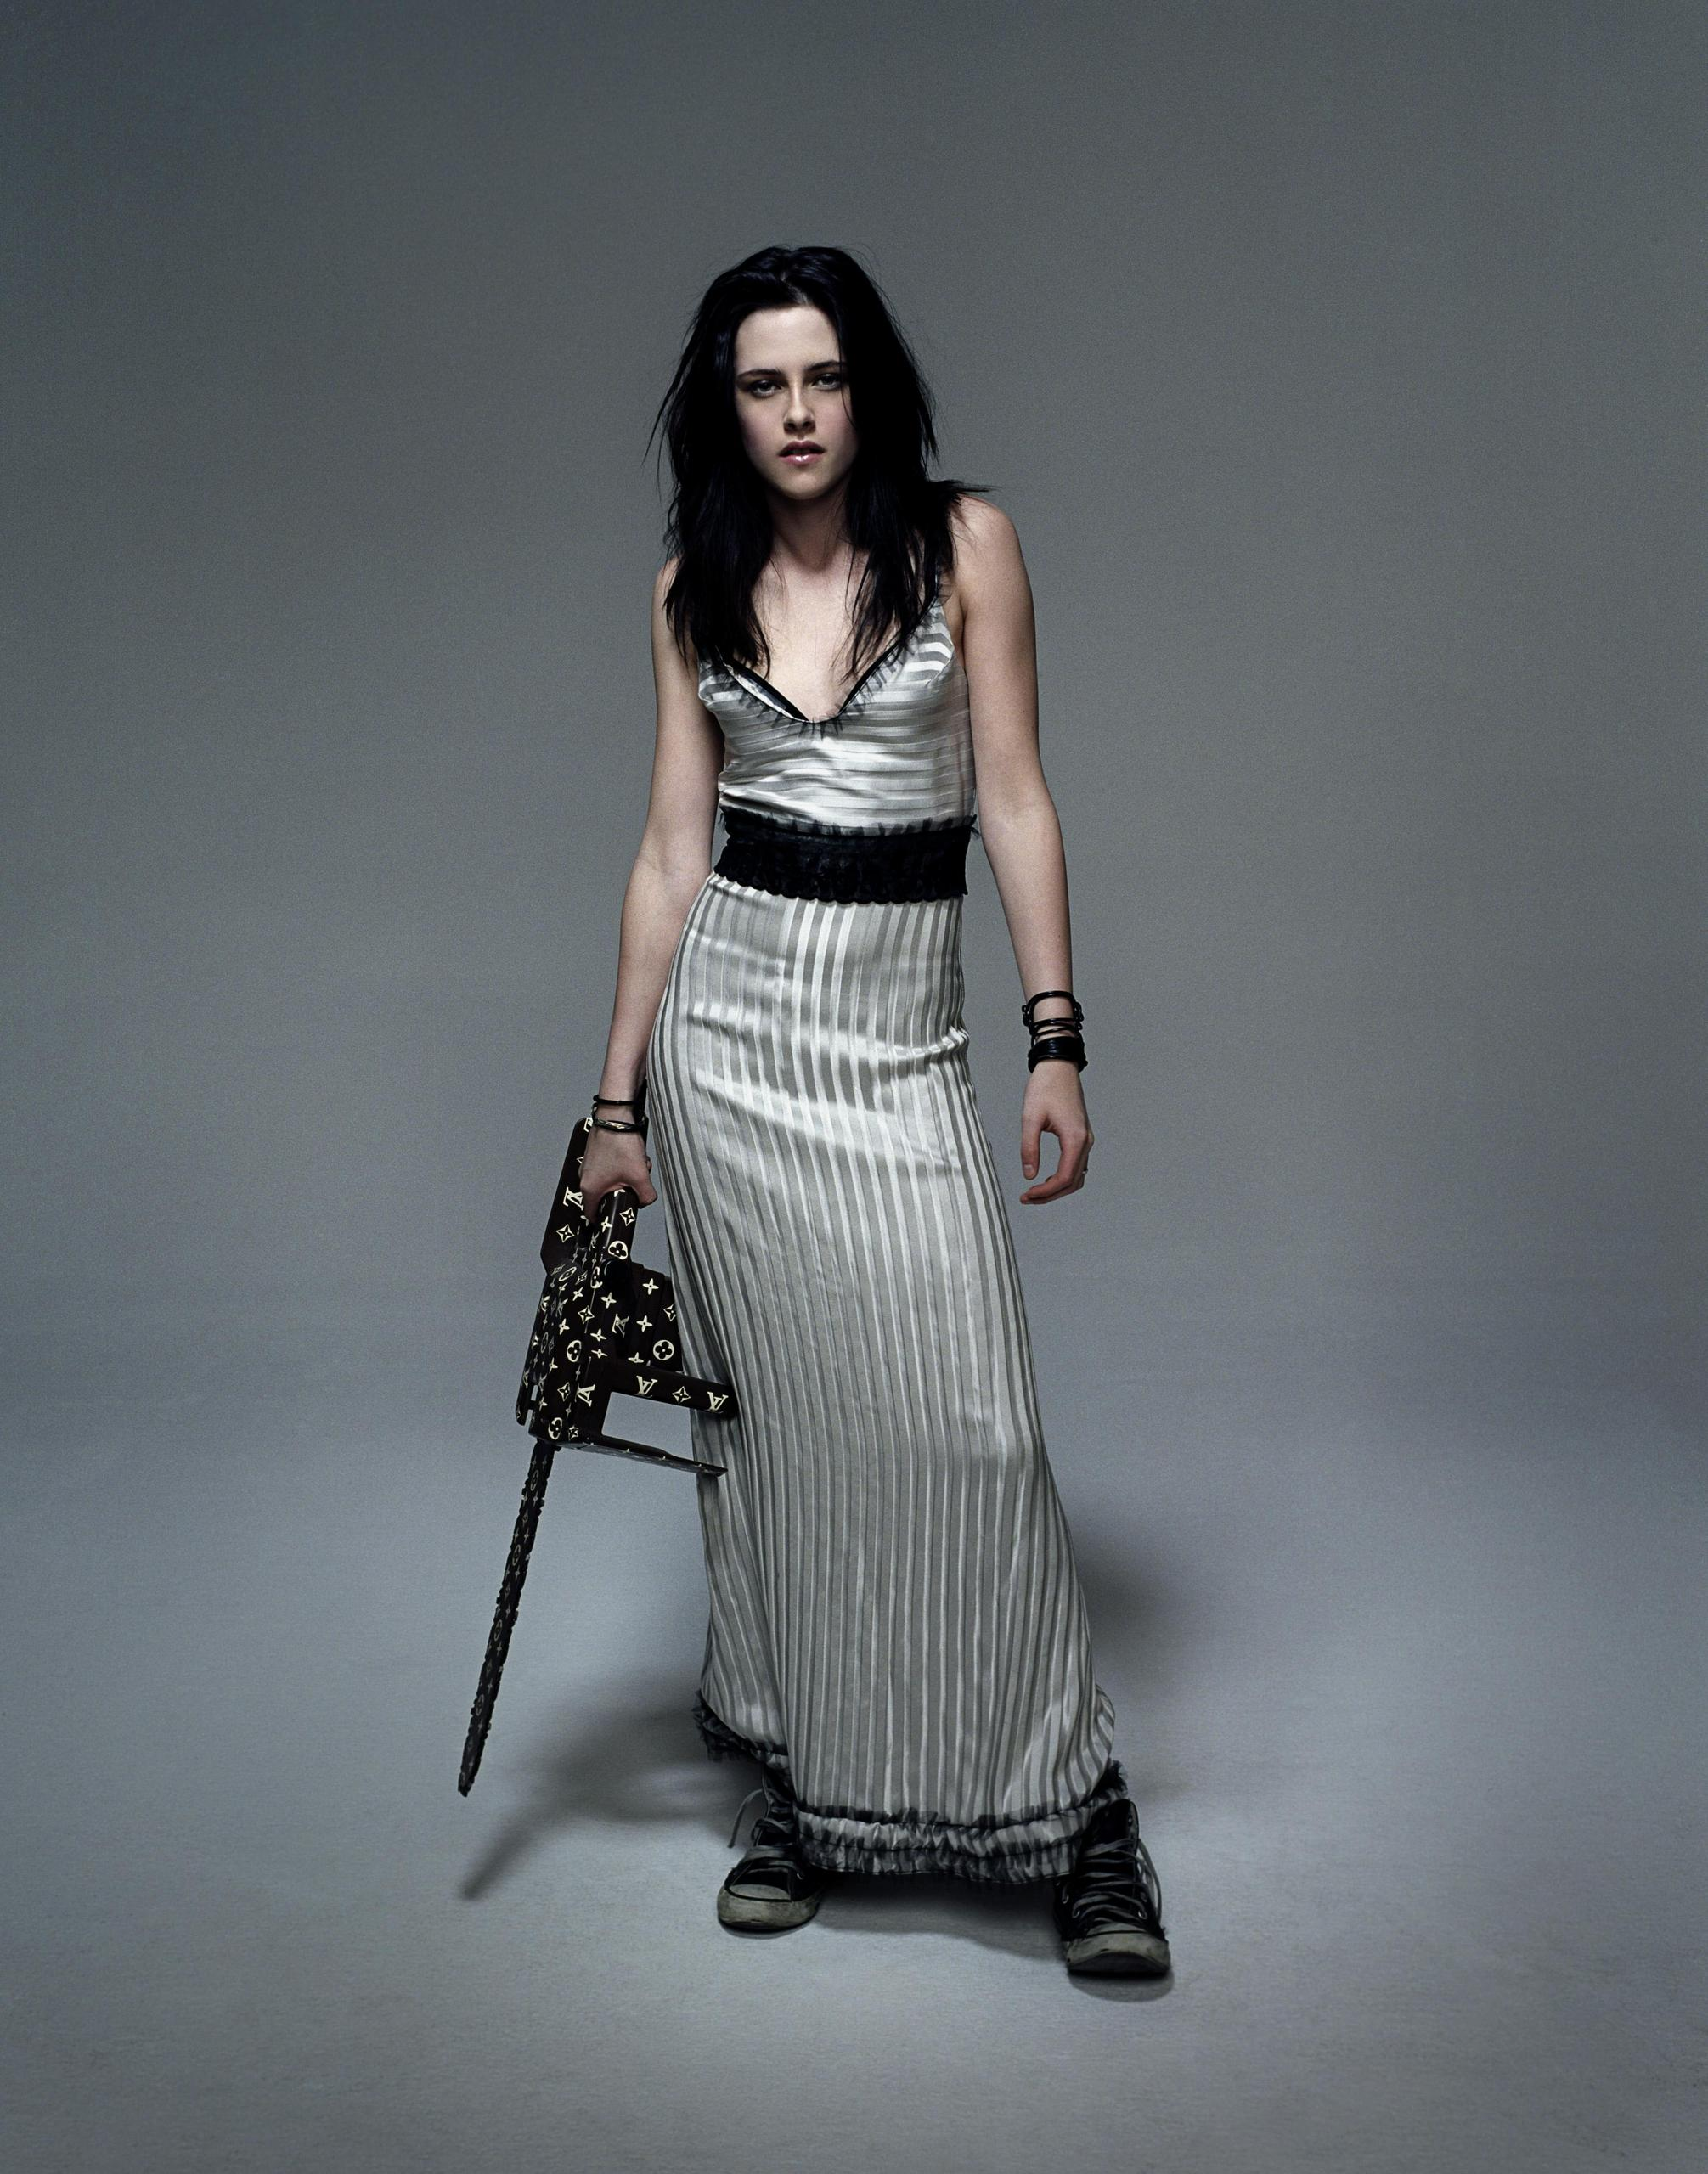 kristen stewart-photoshop 2006 HQ